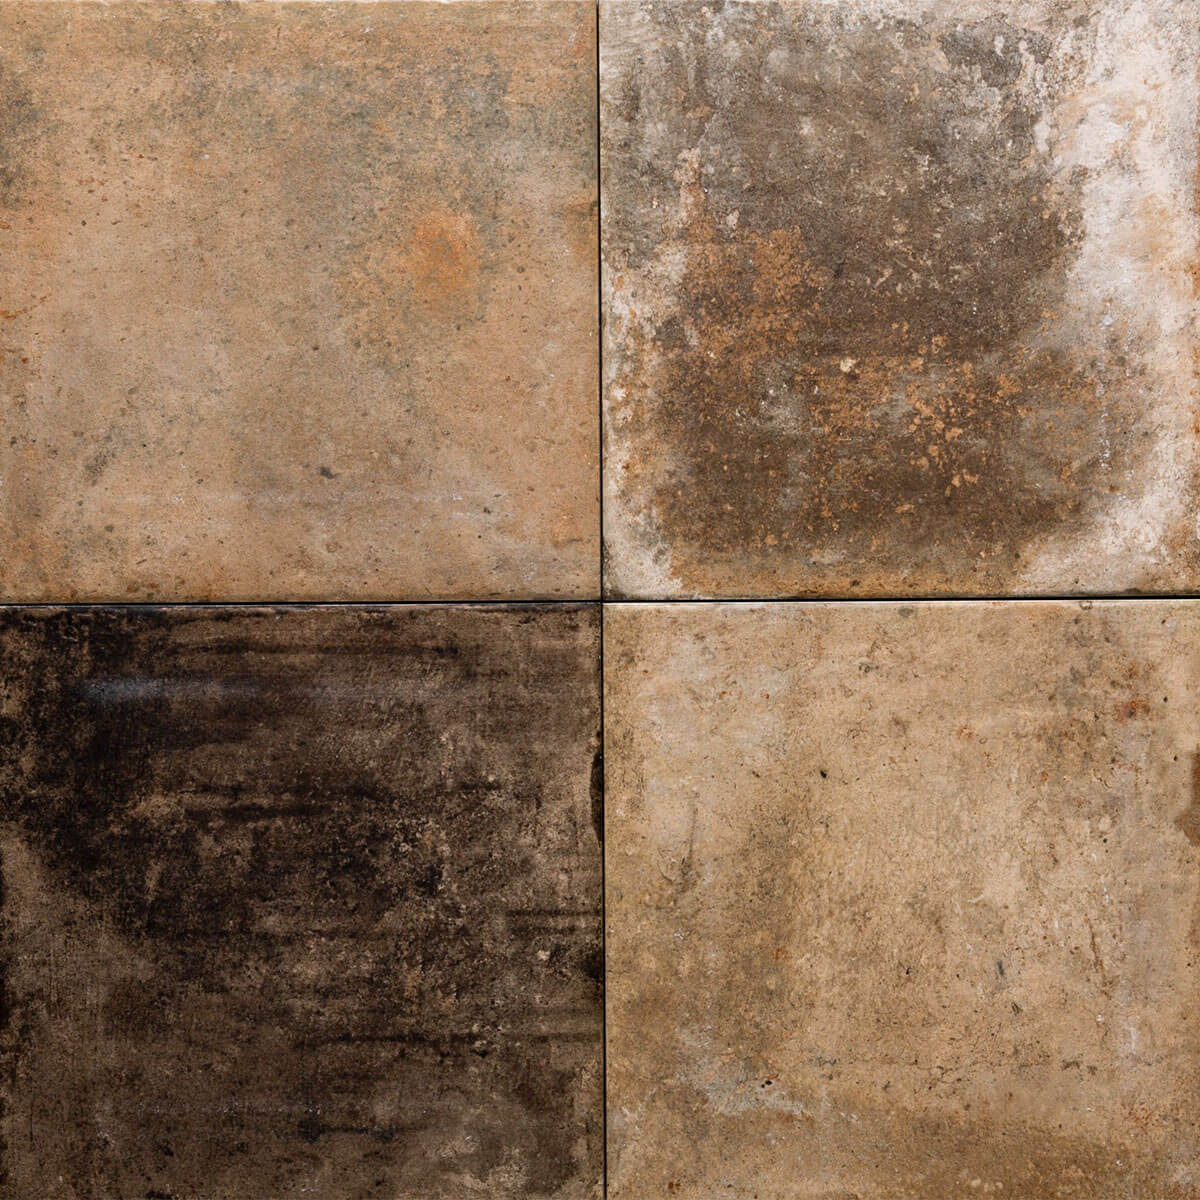 TERRE NUOVE BROWN 30X30